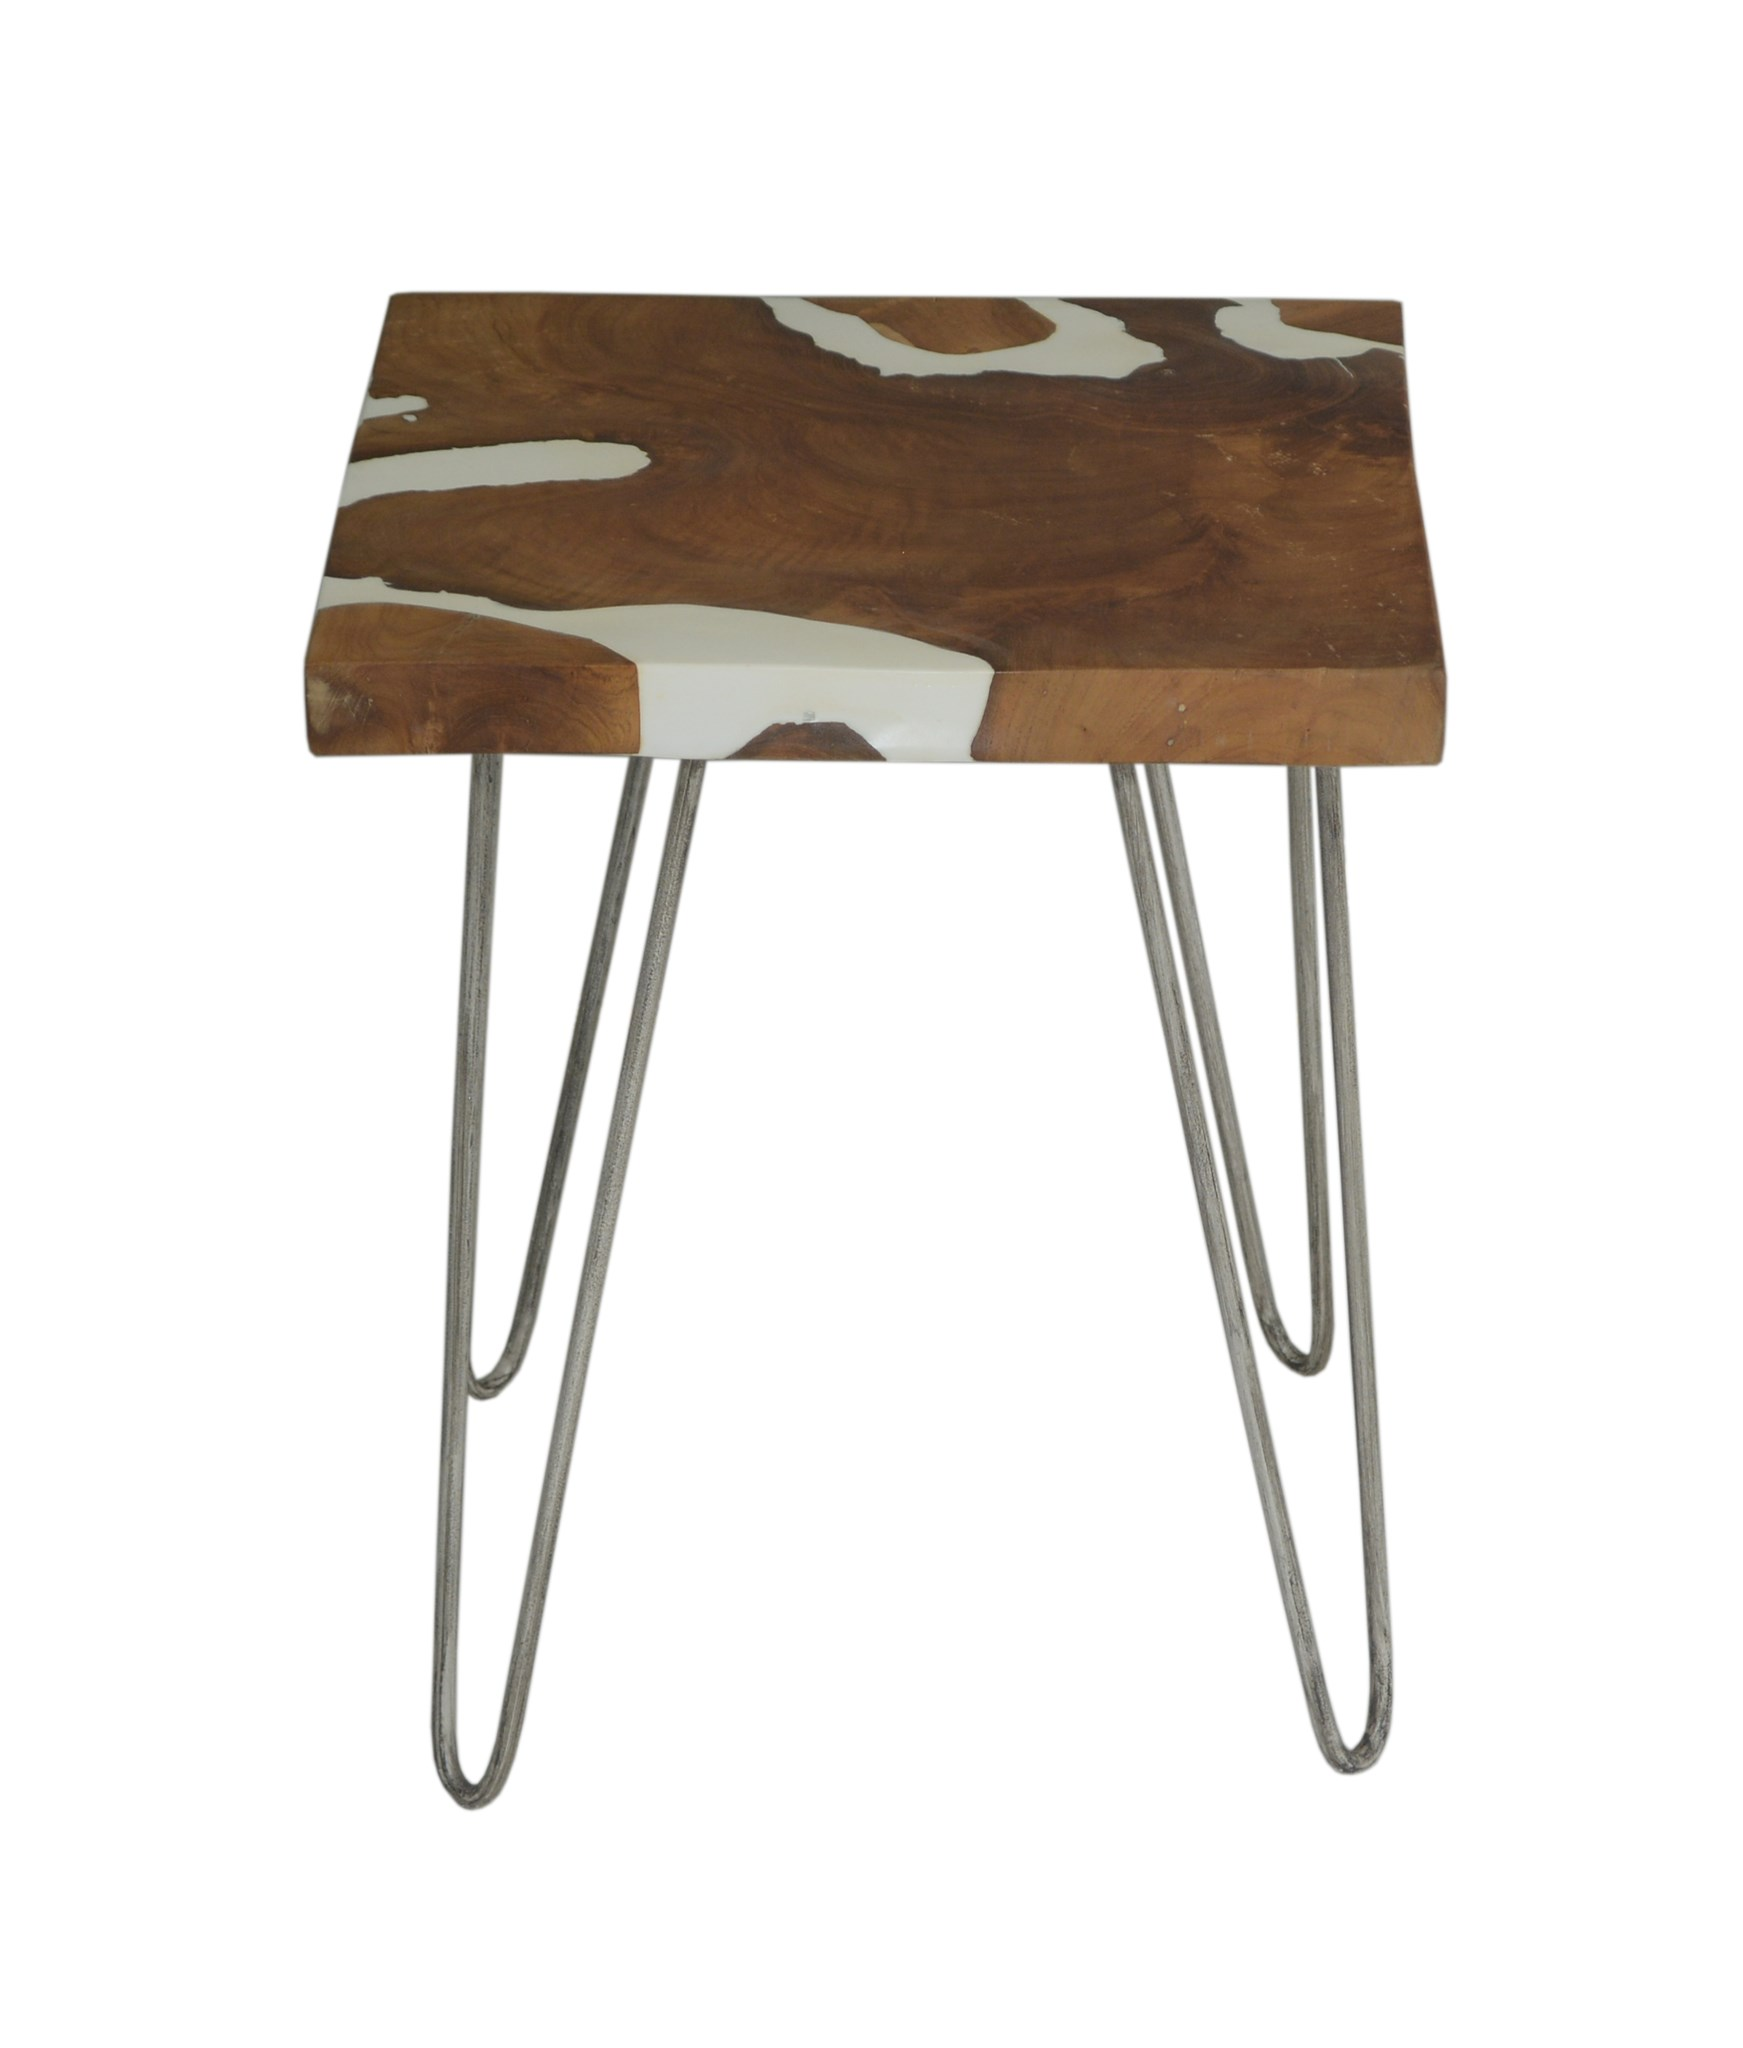 (LS) Natura White Resin Side Table Square W/ Four Legs (16.5x16